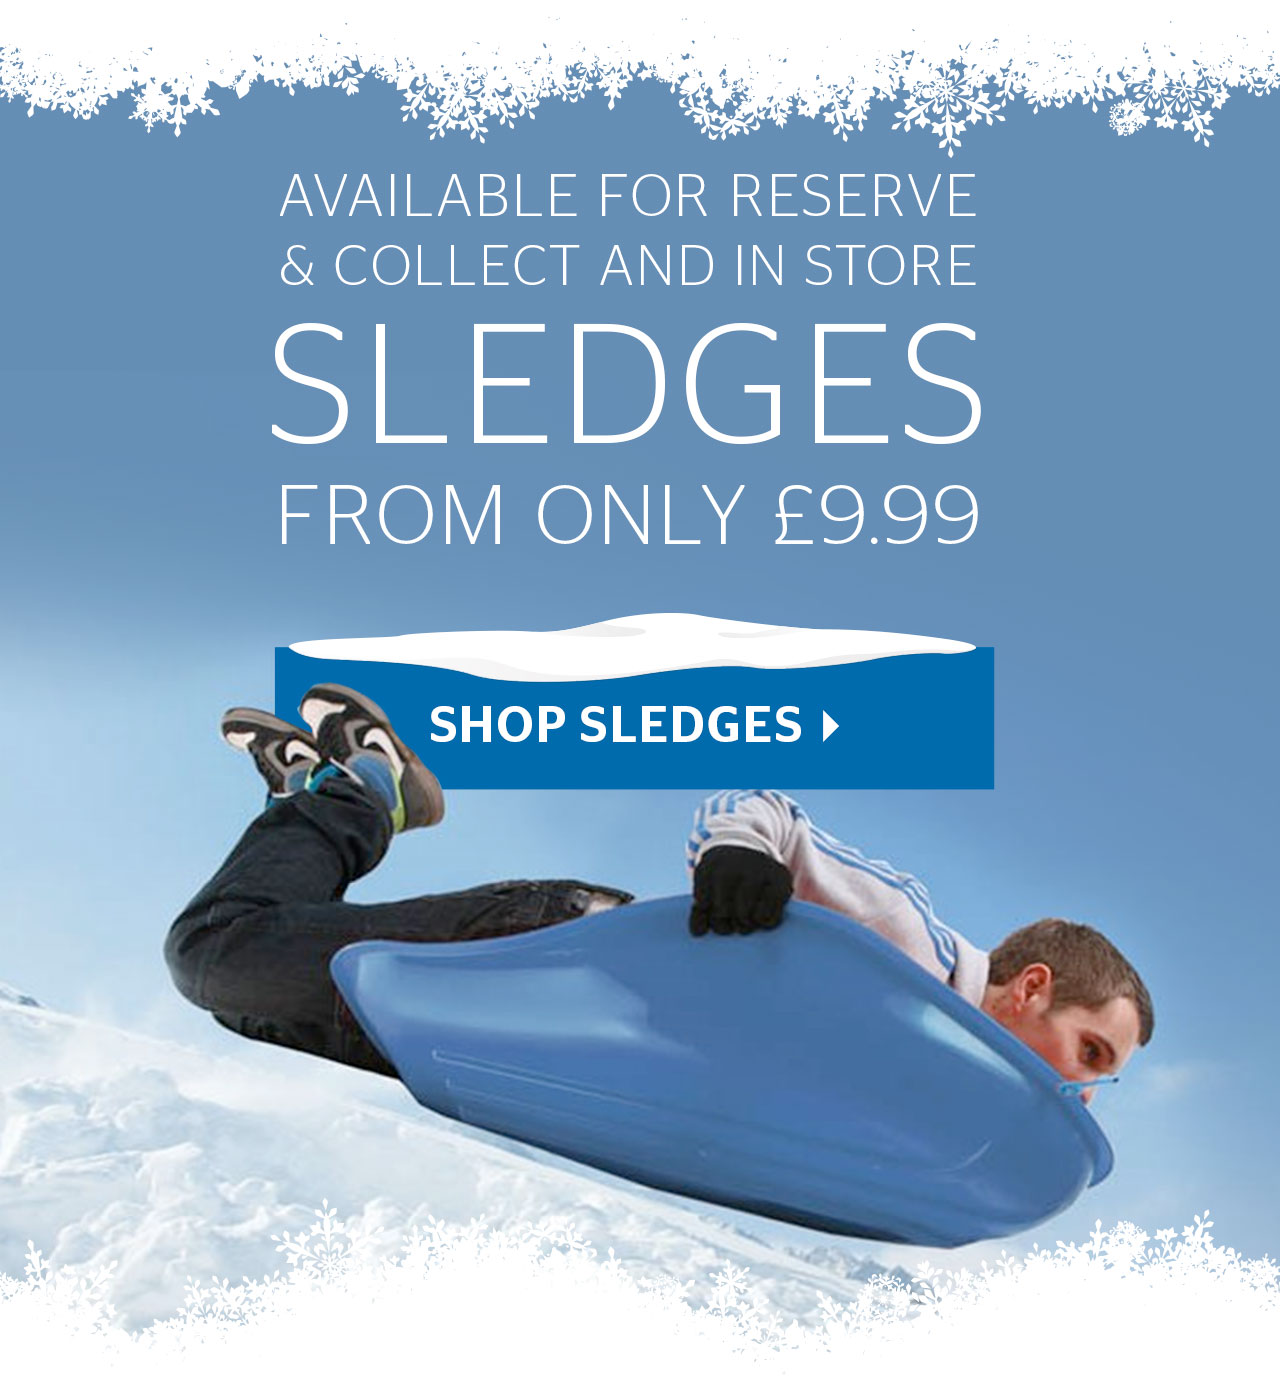 Sledges from only £9.99